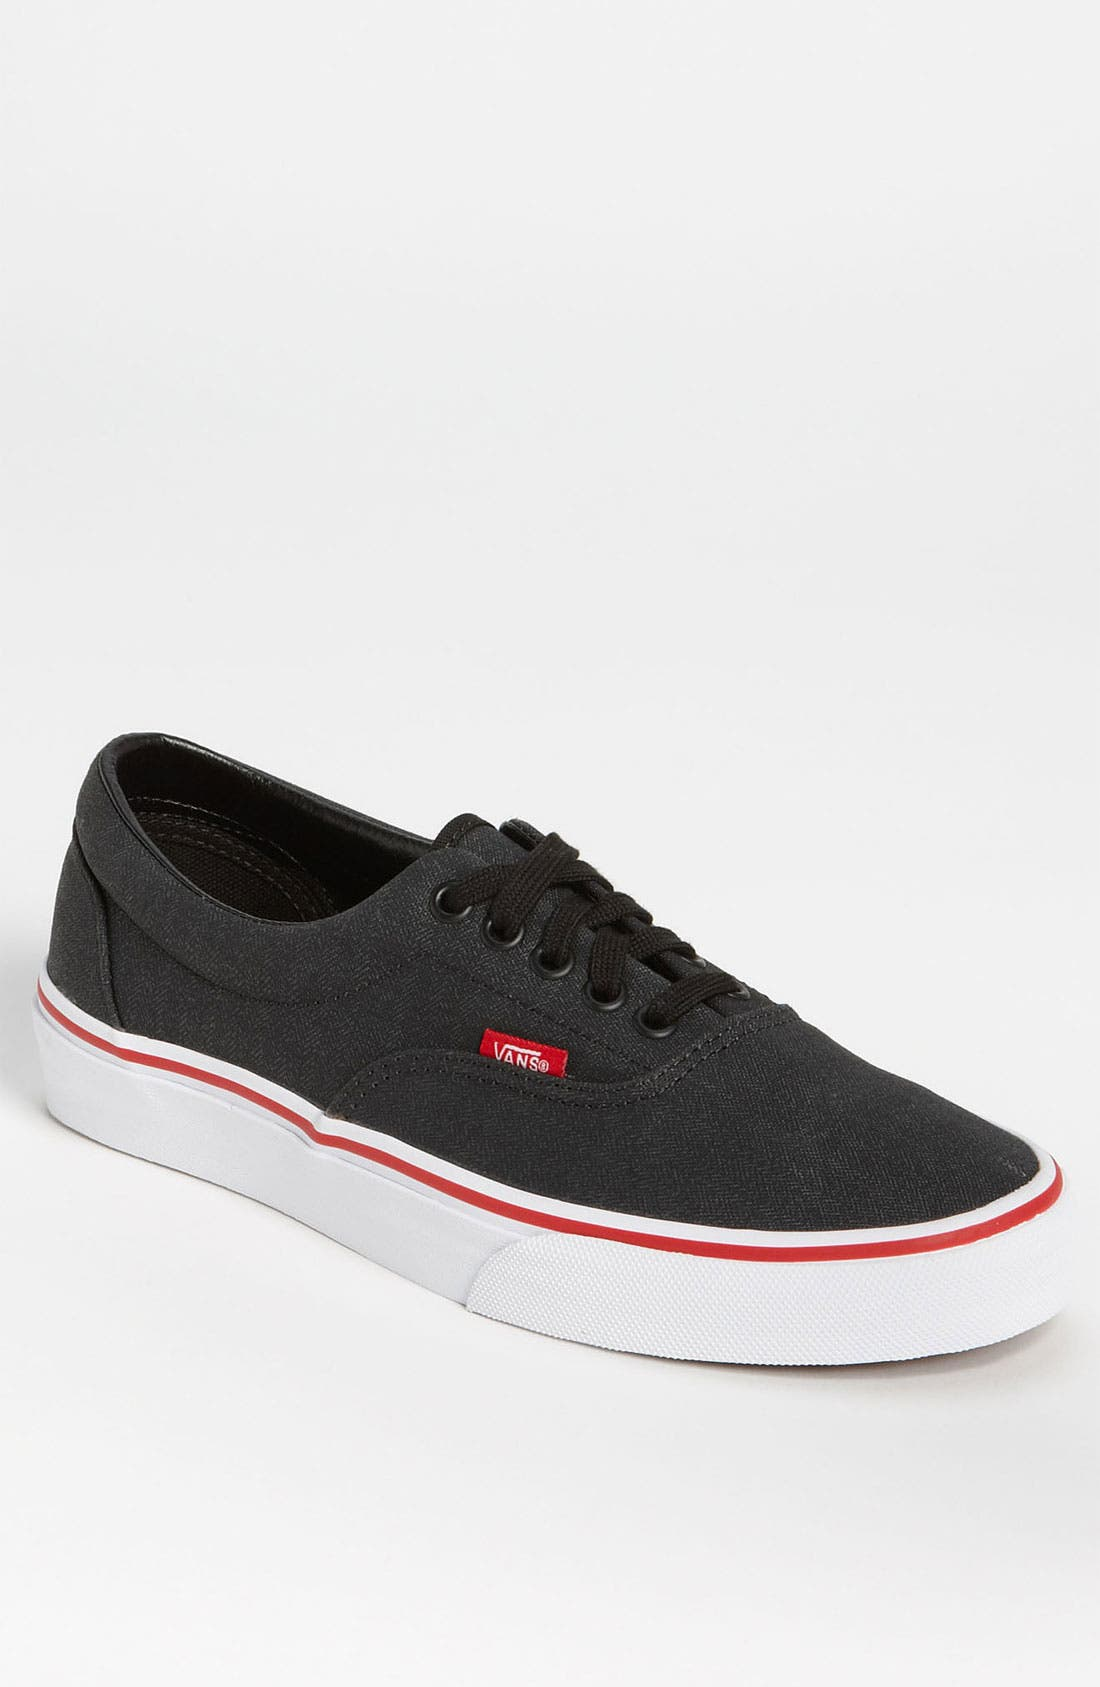 Main Image - Vans 'Era' Sneaker (Men)